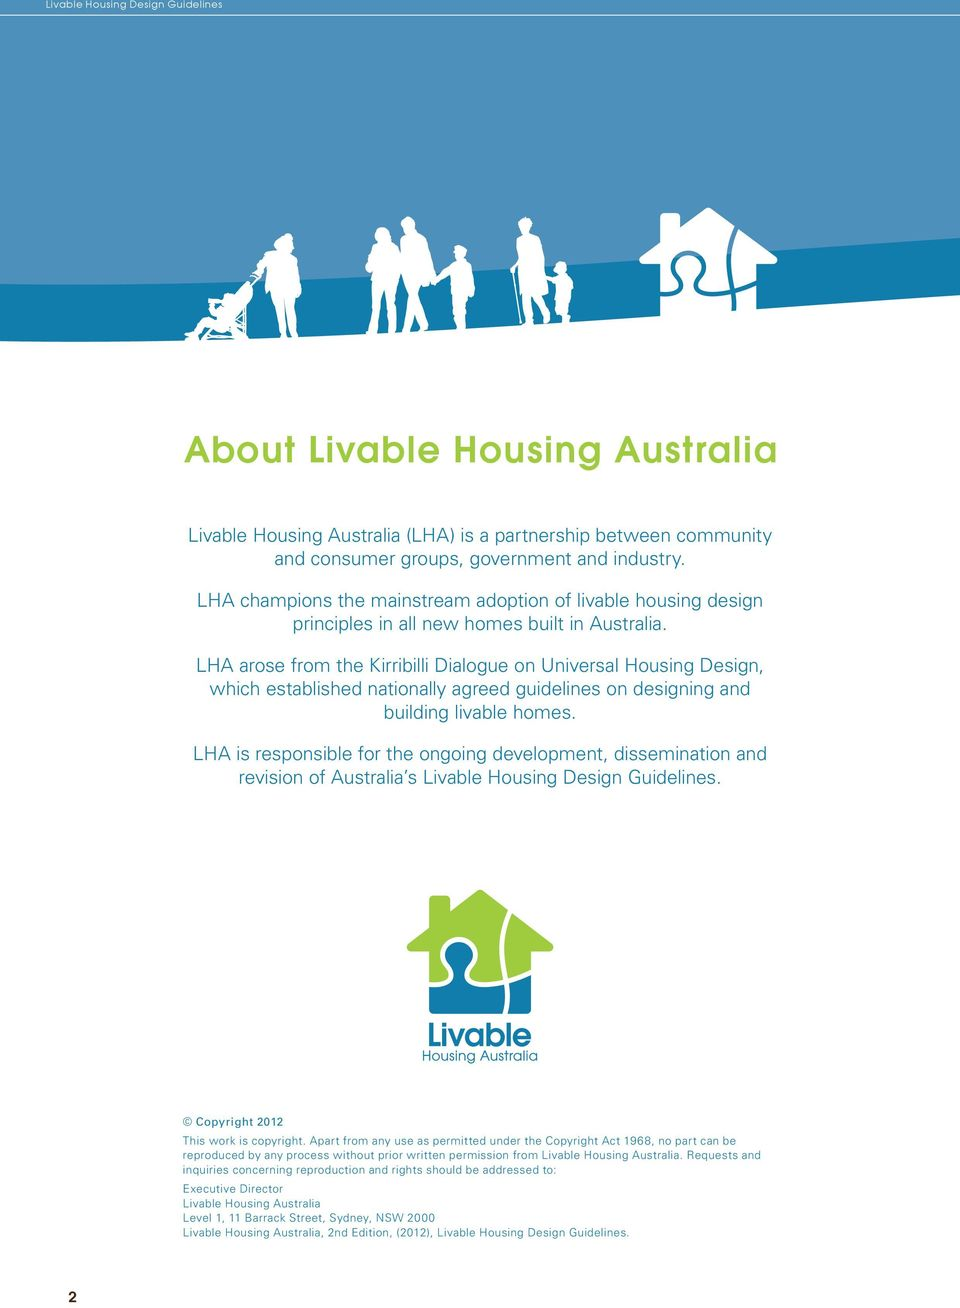 LHA arose from the Kirribilli Dialogue on Universal Housing Design, which established nationally agreed guidelines on designing and building livable homes.